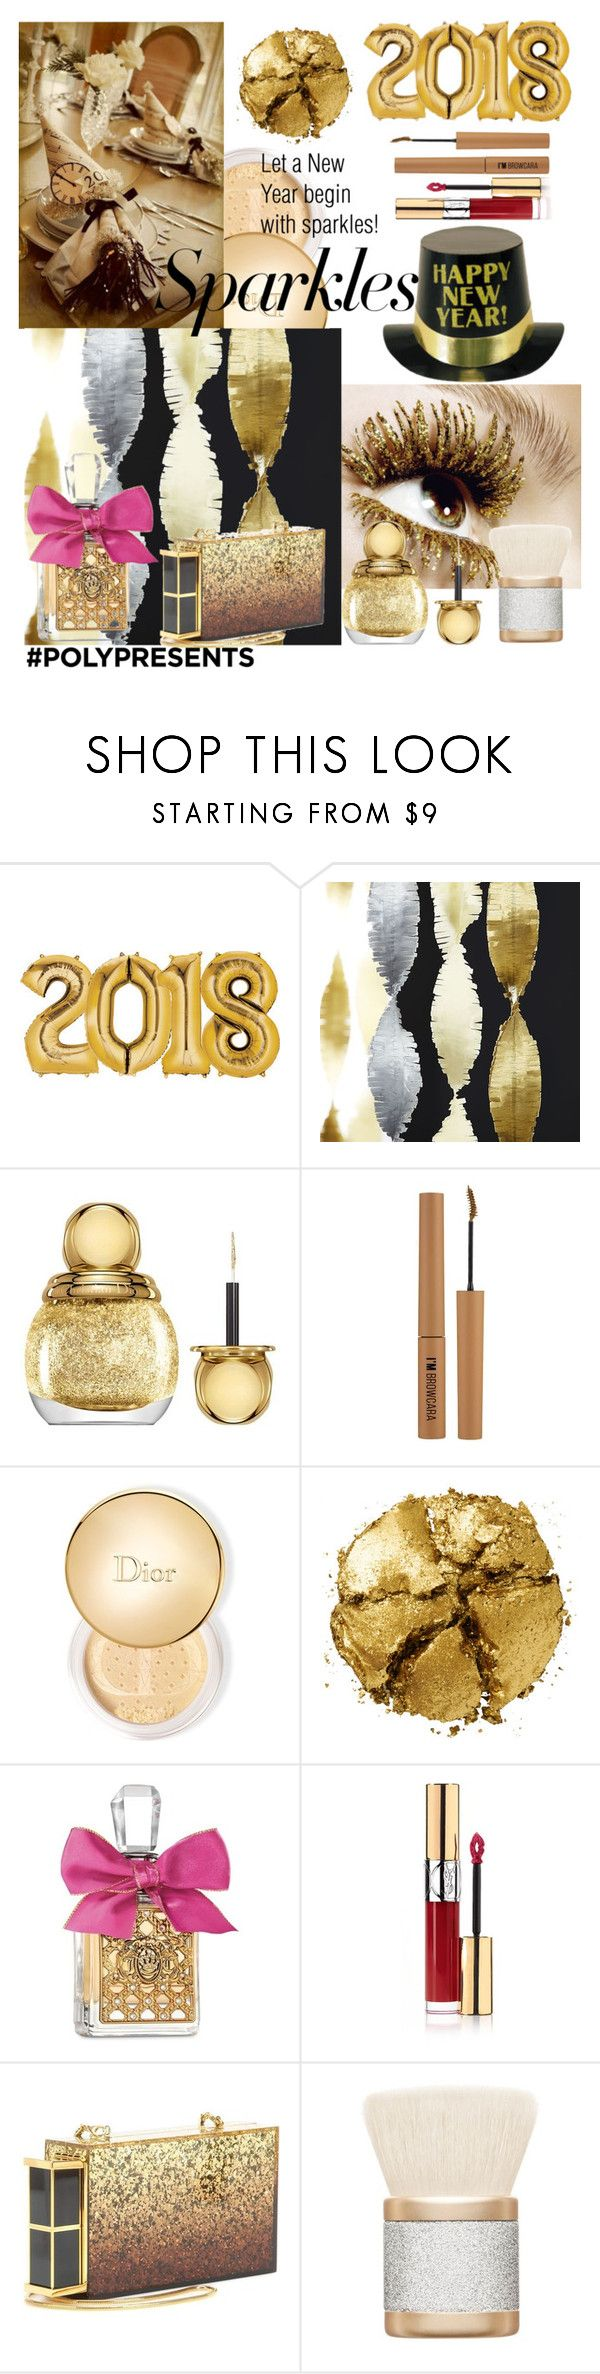 """#PolyPresents: Sparkly Beauty"" by thefakecake ❤ liked on Polyvore featuring beauty, Crate and Barrel, Christian Dior, Forever 21, Pat McGrath, Juicy Couture, Yves Saint Laurent, Tom Ford, MAC Cosmetics and contestentry"